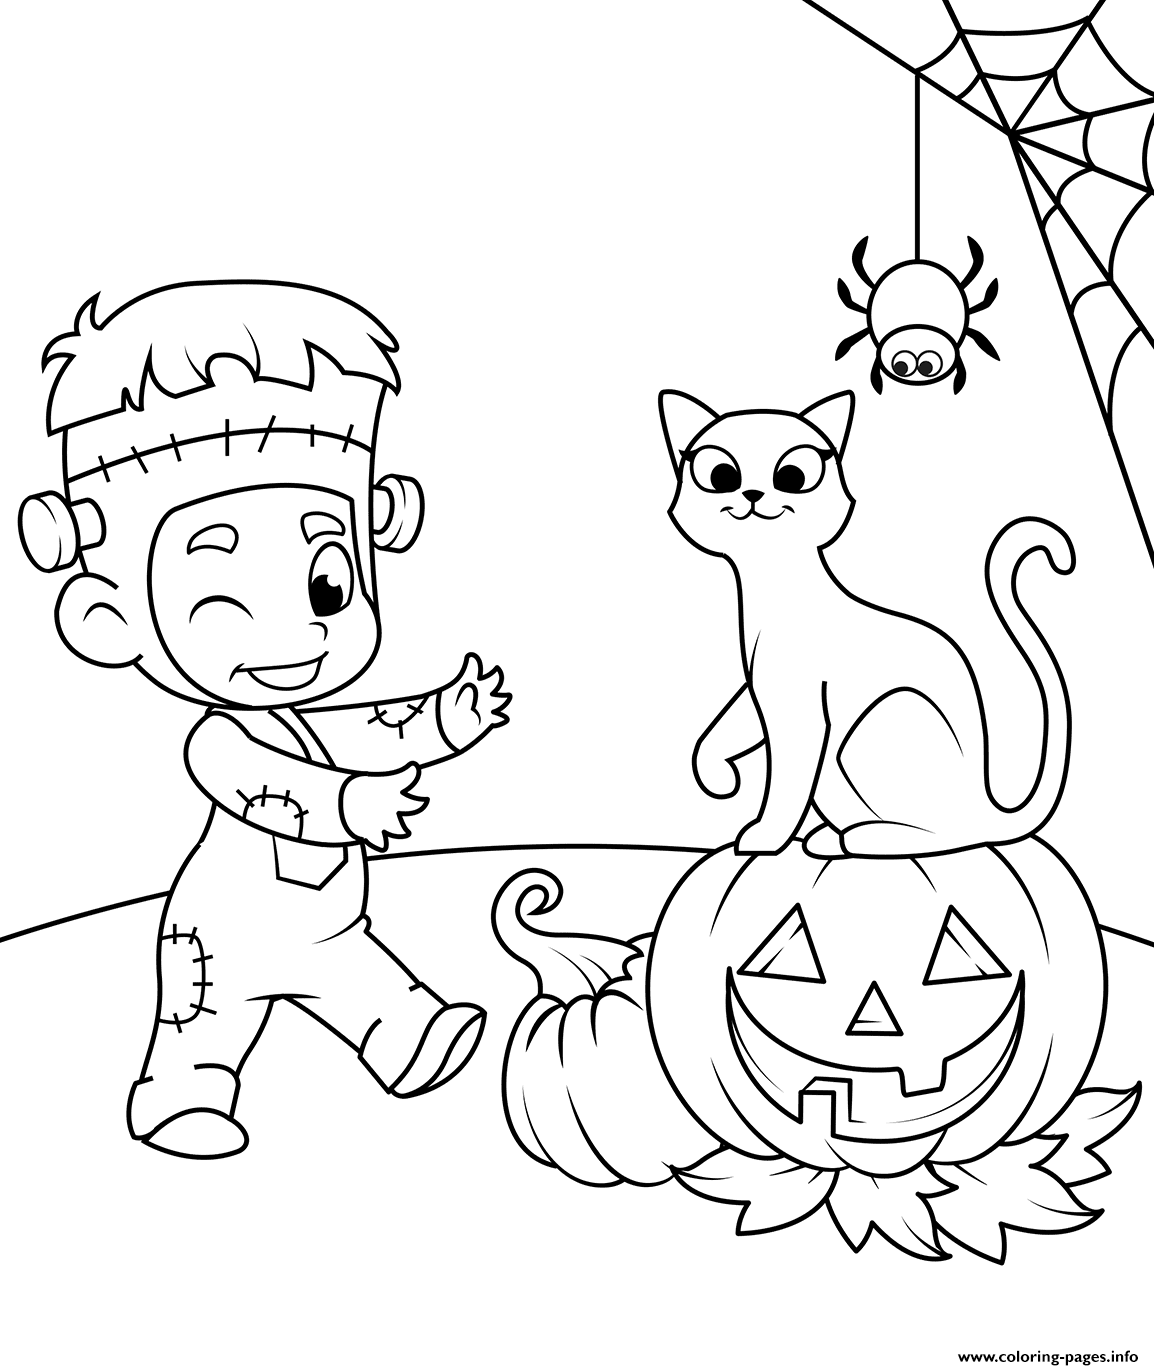 Cute Kid In A Costume With A Cat And Jack O Lantern Halloween coloring pages